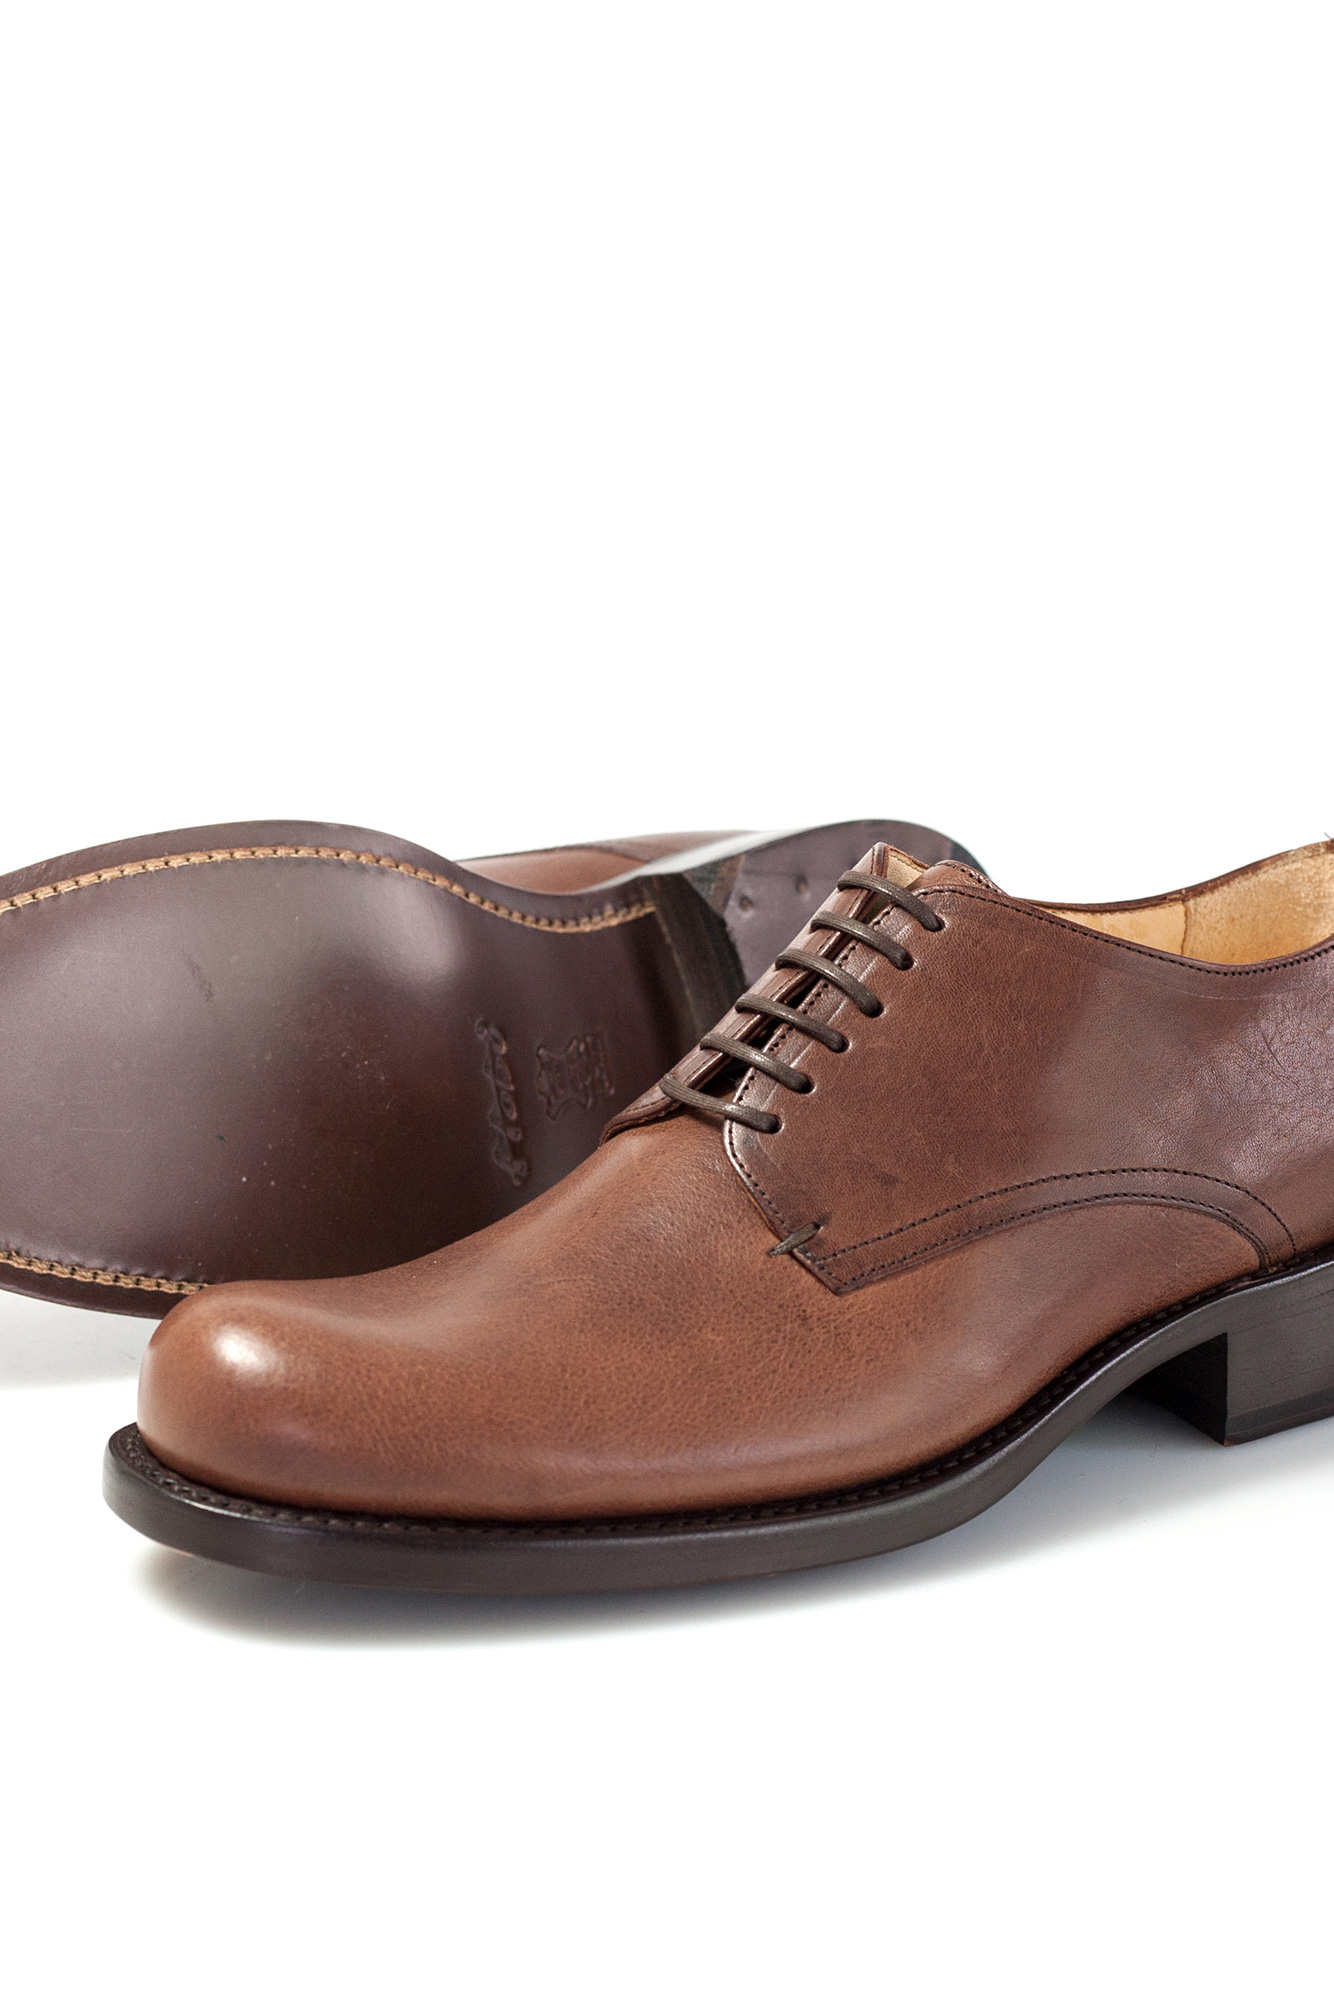 Garth Herrenhalbschuh brown braun